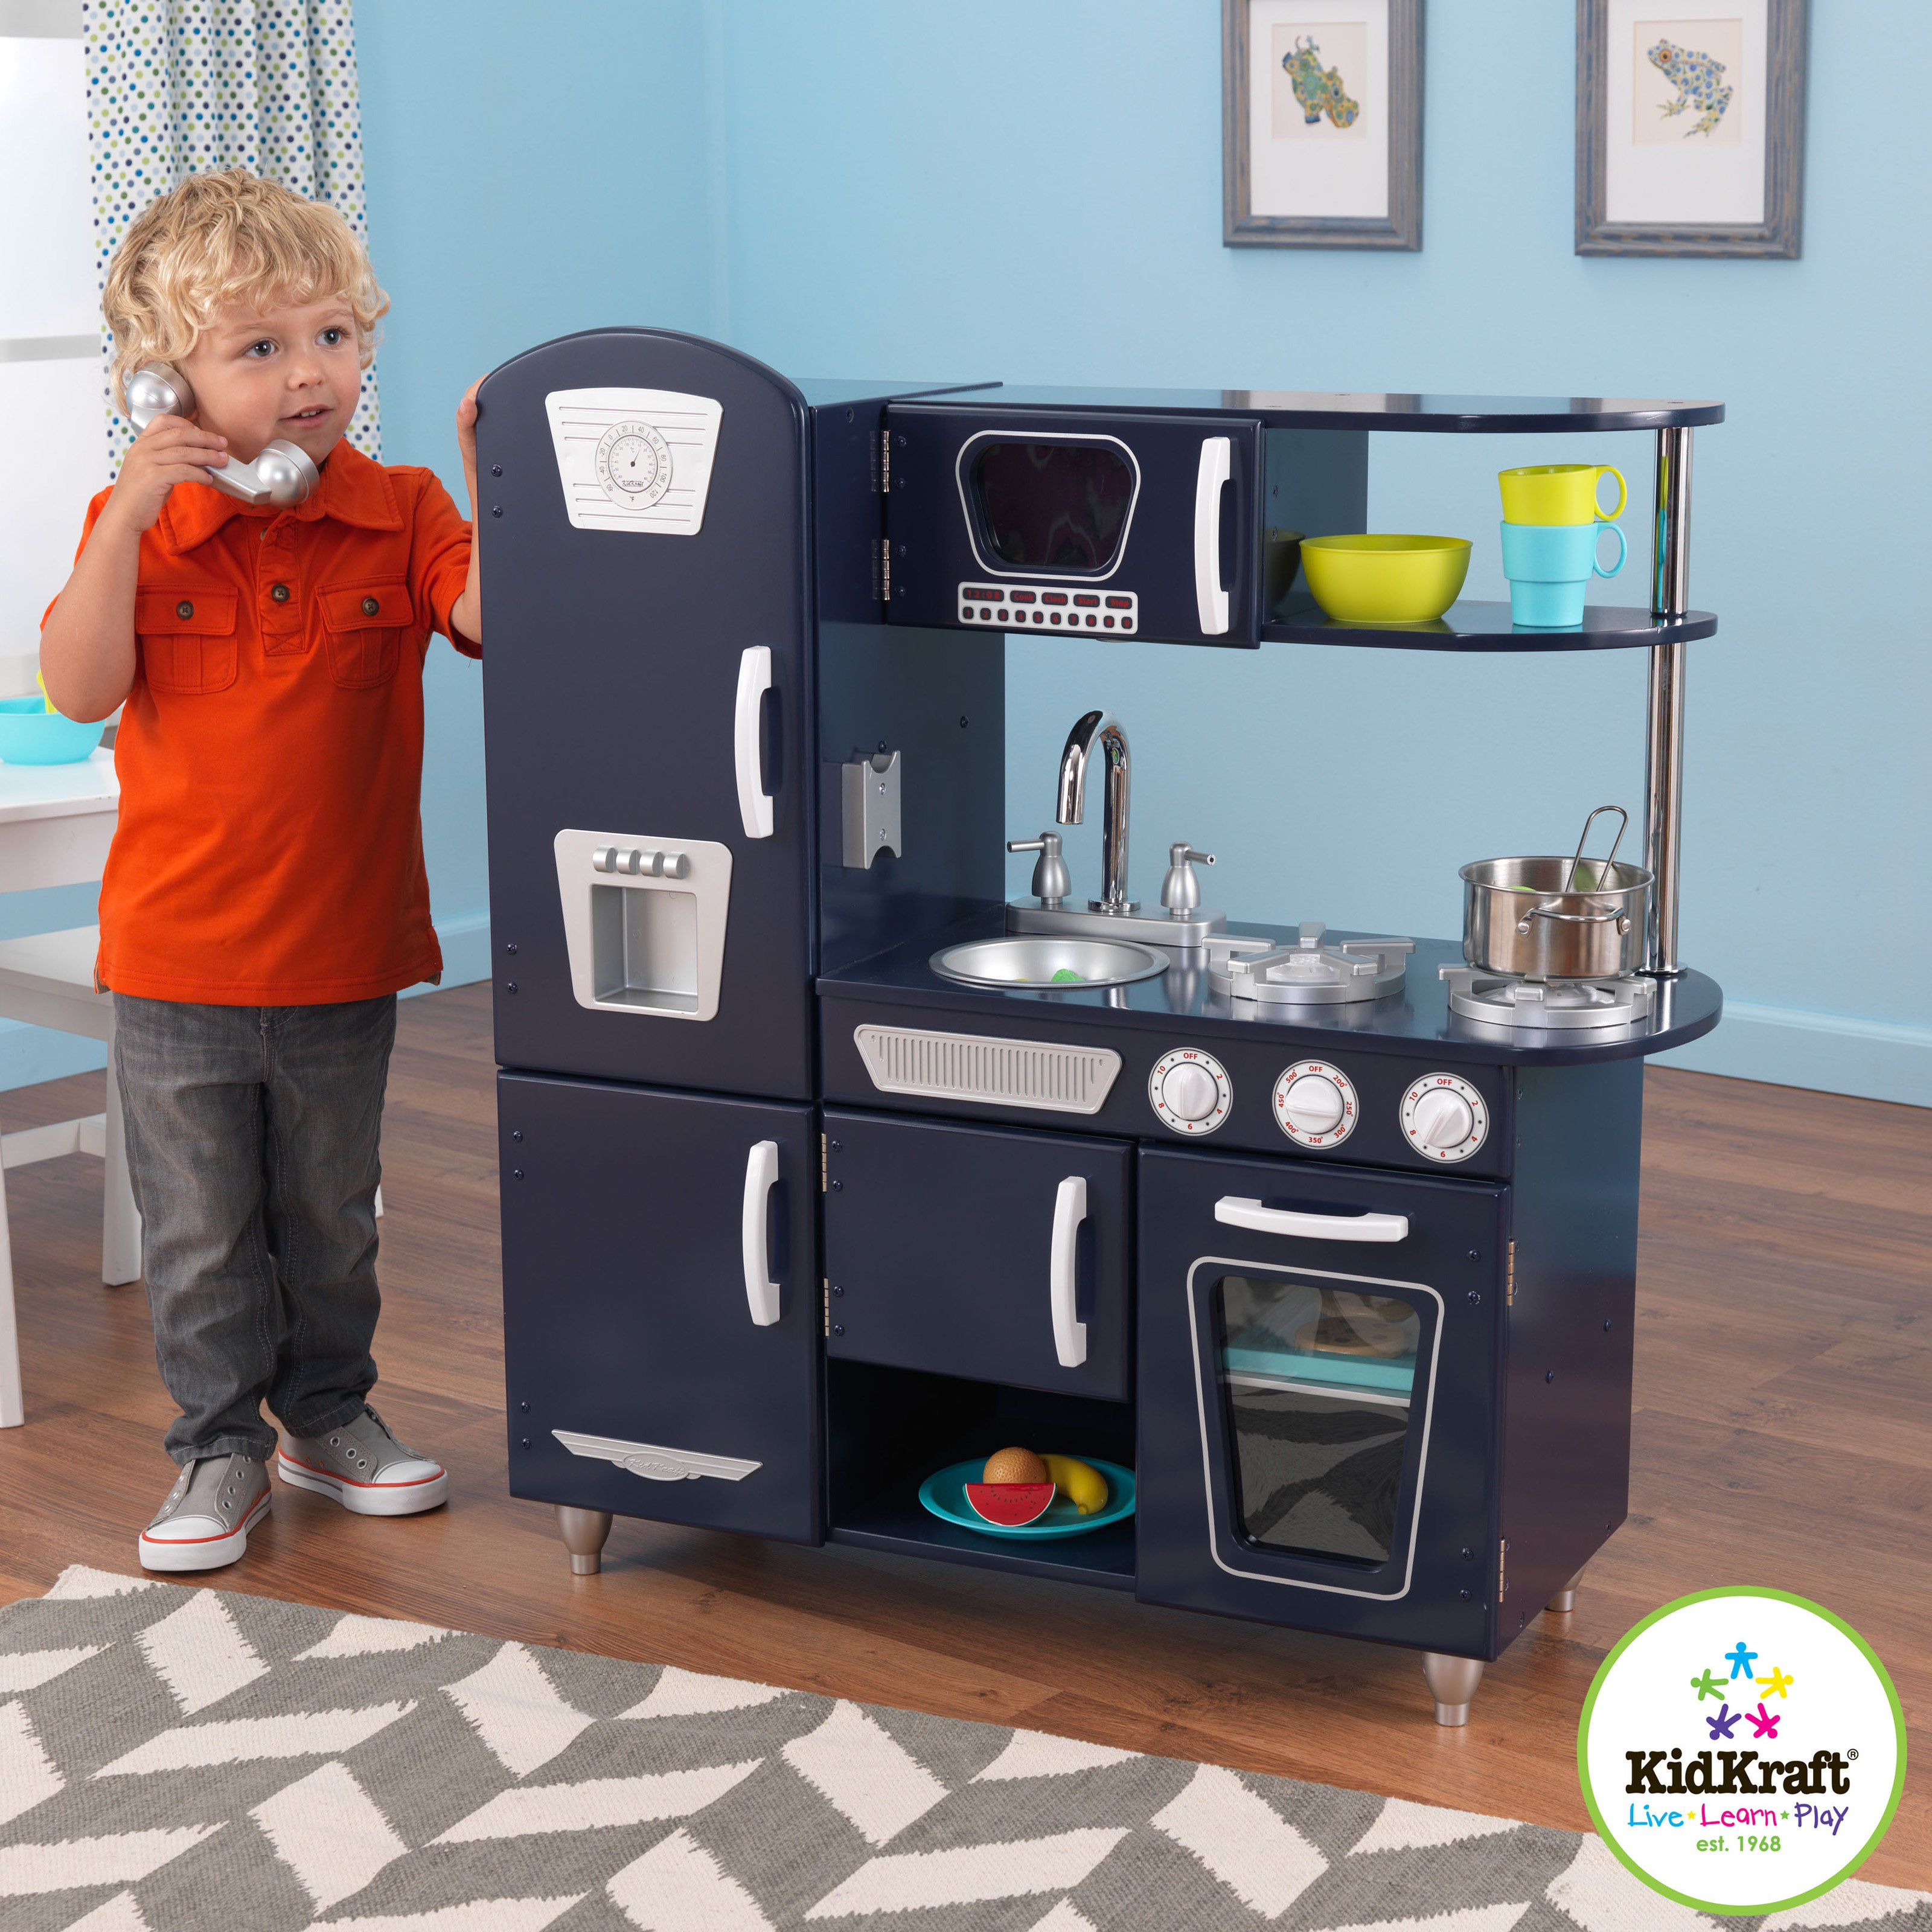 Kidkraft Wooden Play Kitchen kidkraft vintage wooden play kitchen set, navy - walmart